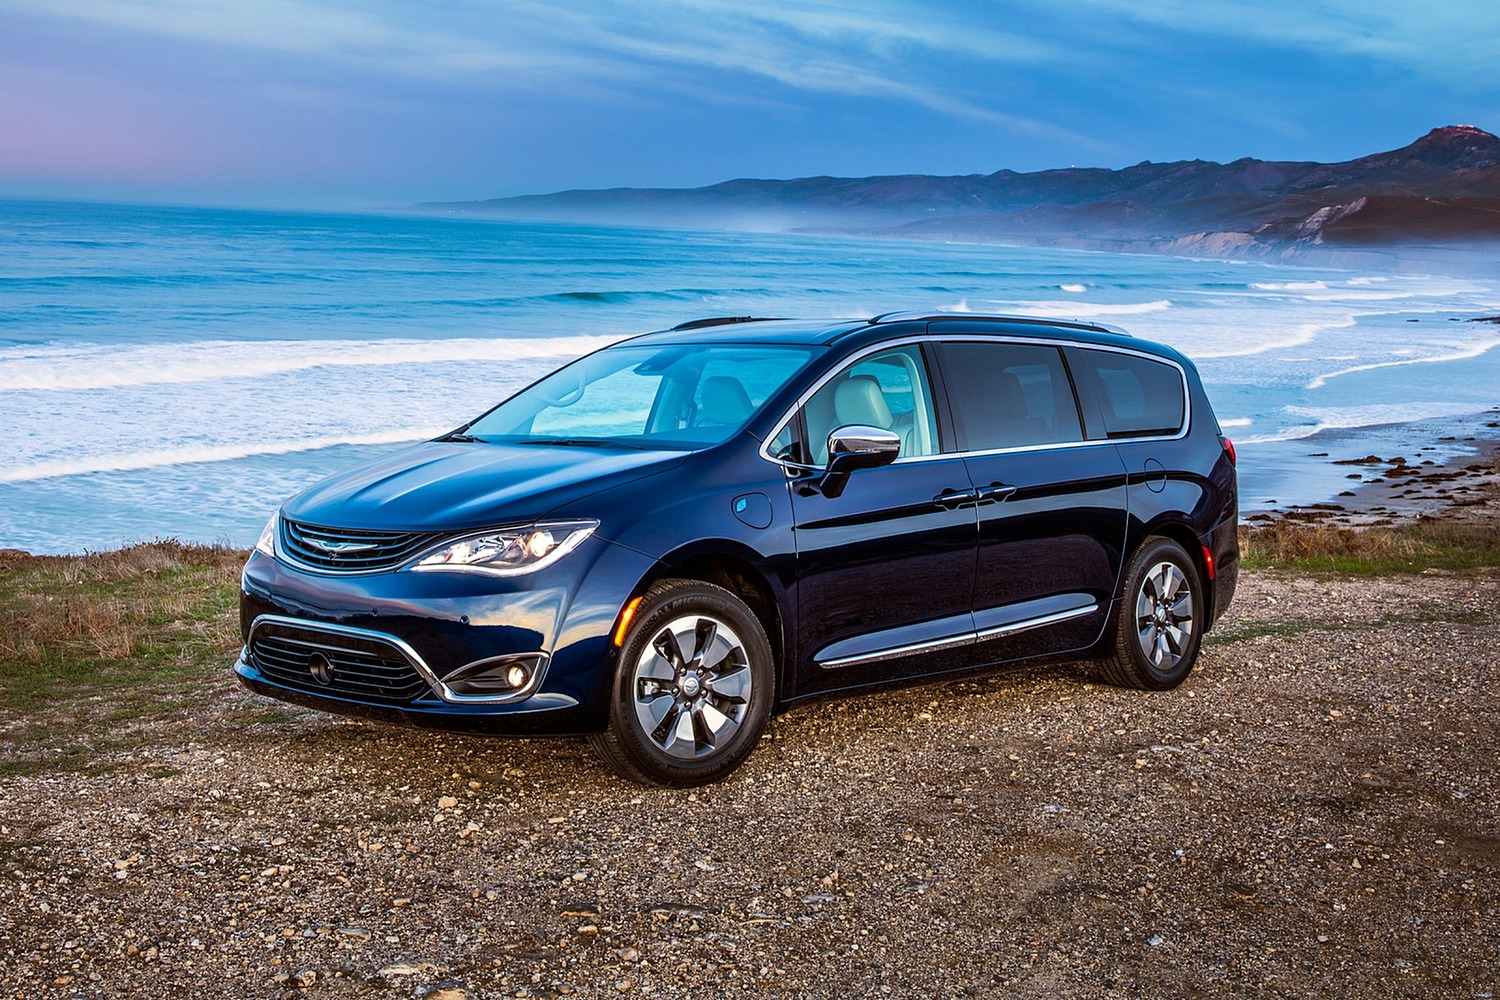 2018 Chrysler Pacifica Hybrid Touring Plus Passenger Minivan Exterior Shown